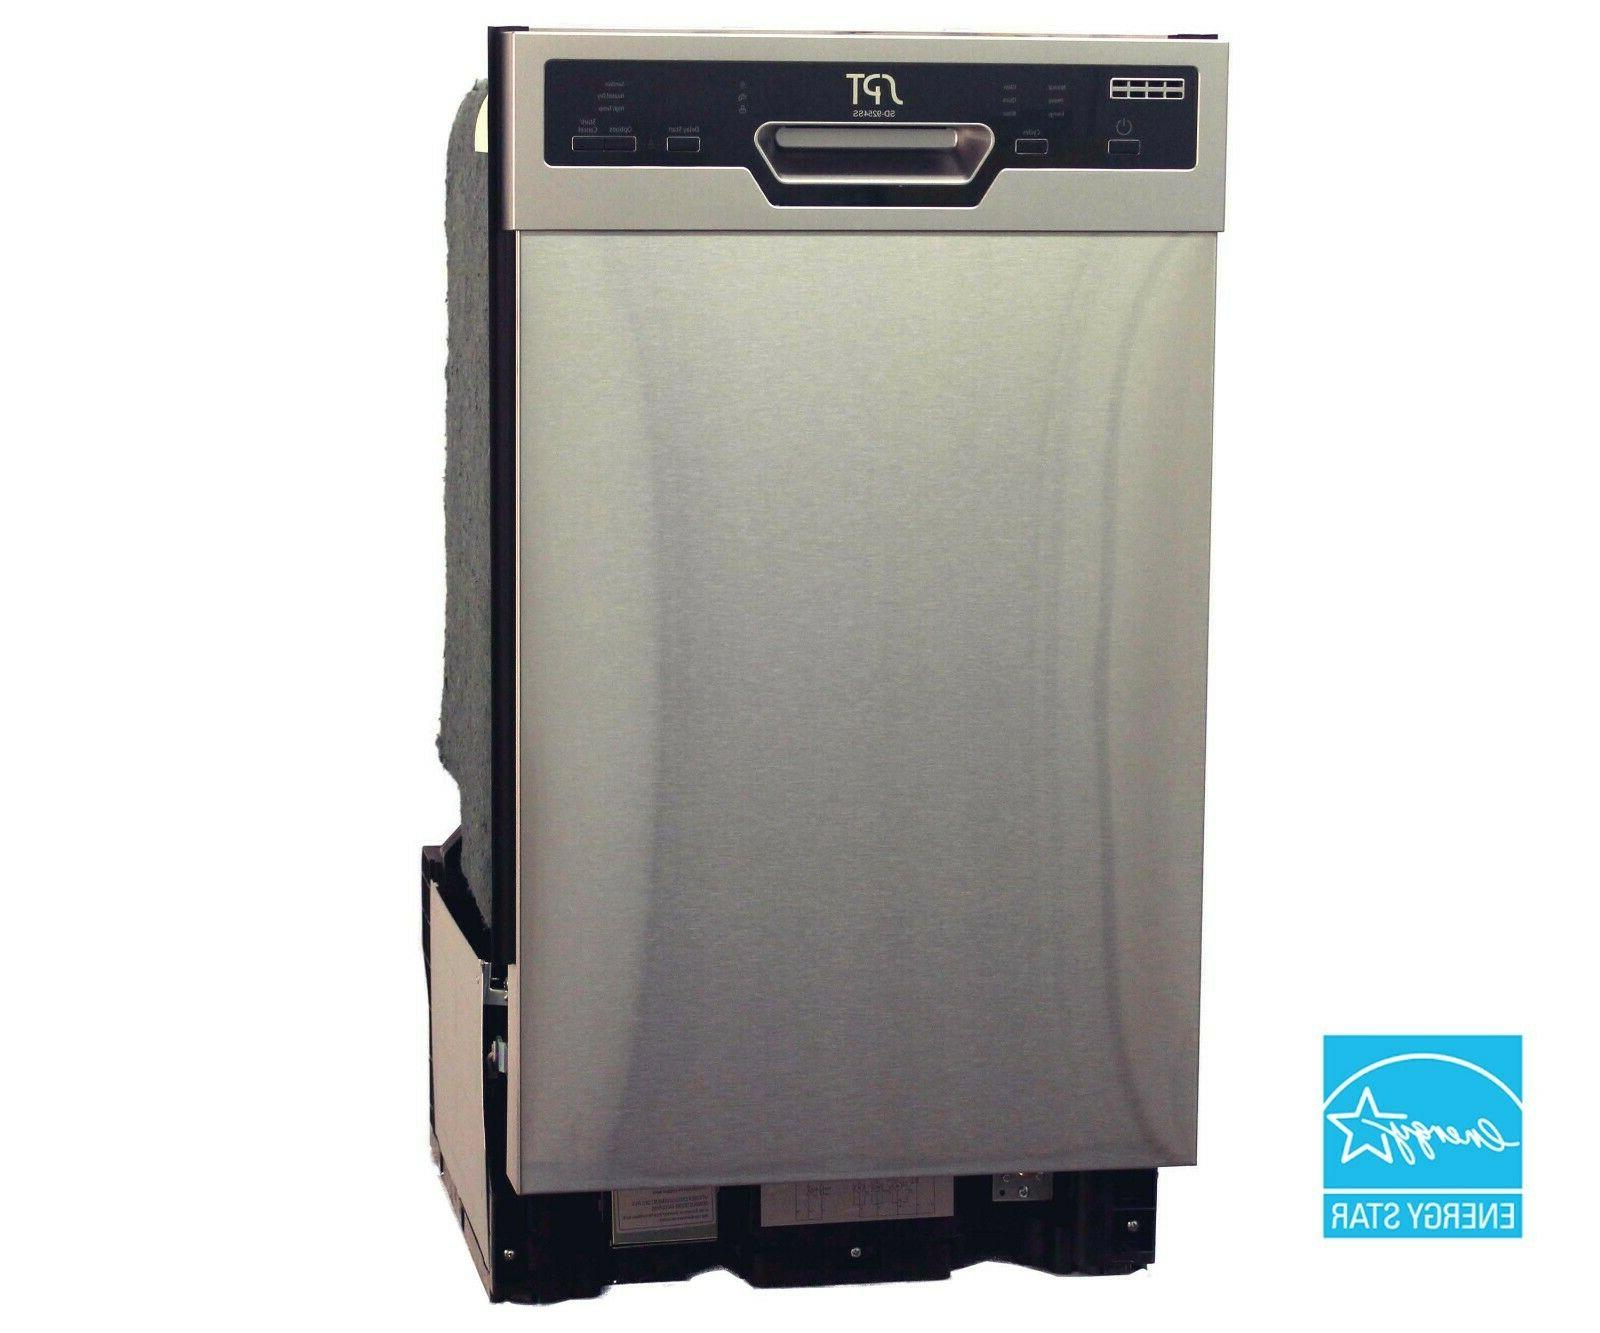 spt 18 built in dishwasher heated drying